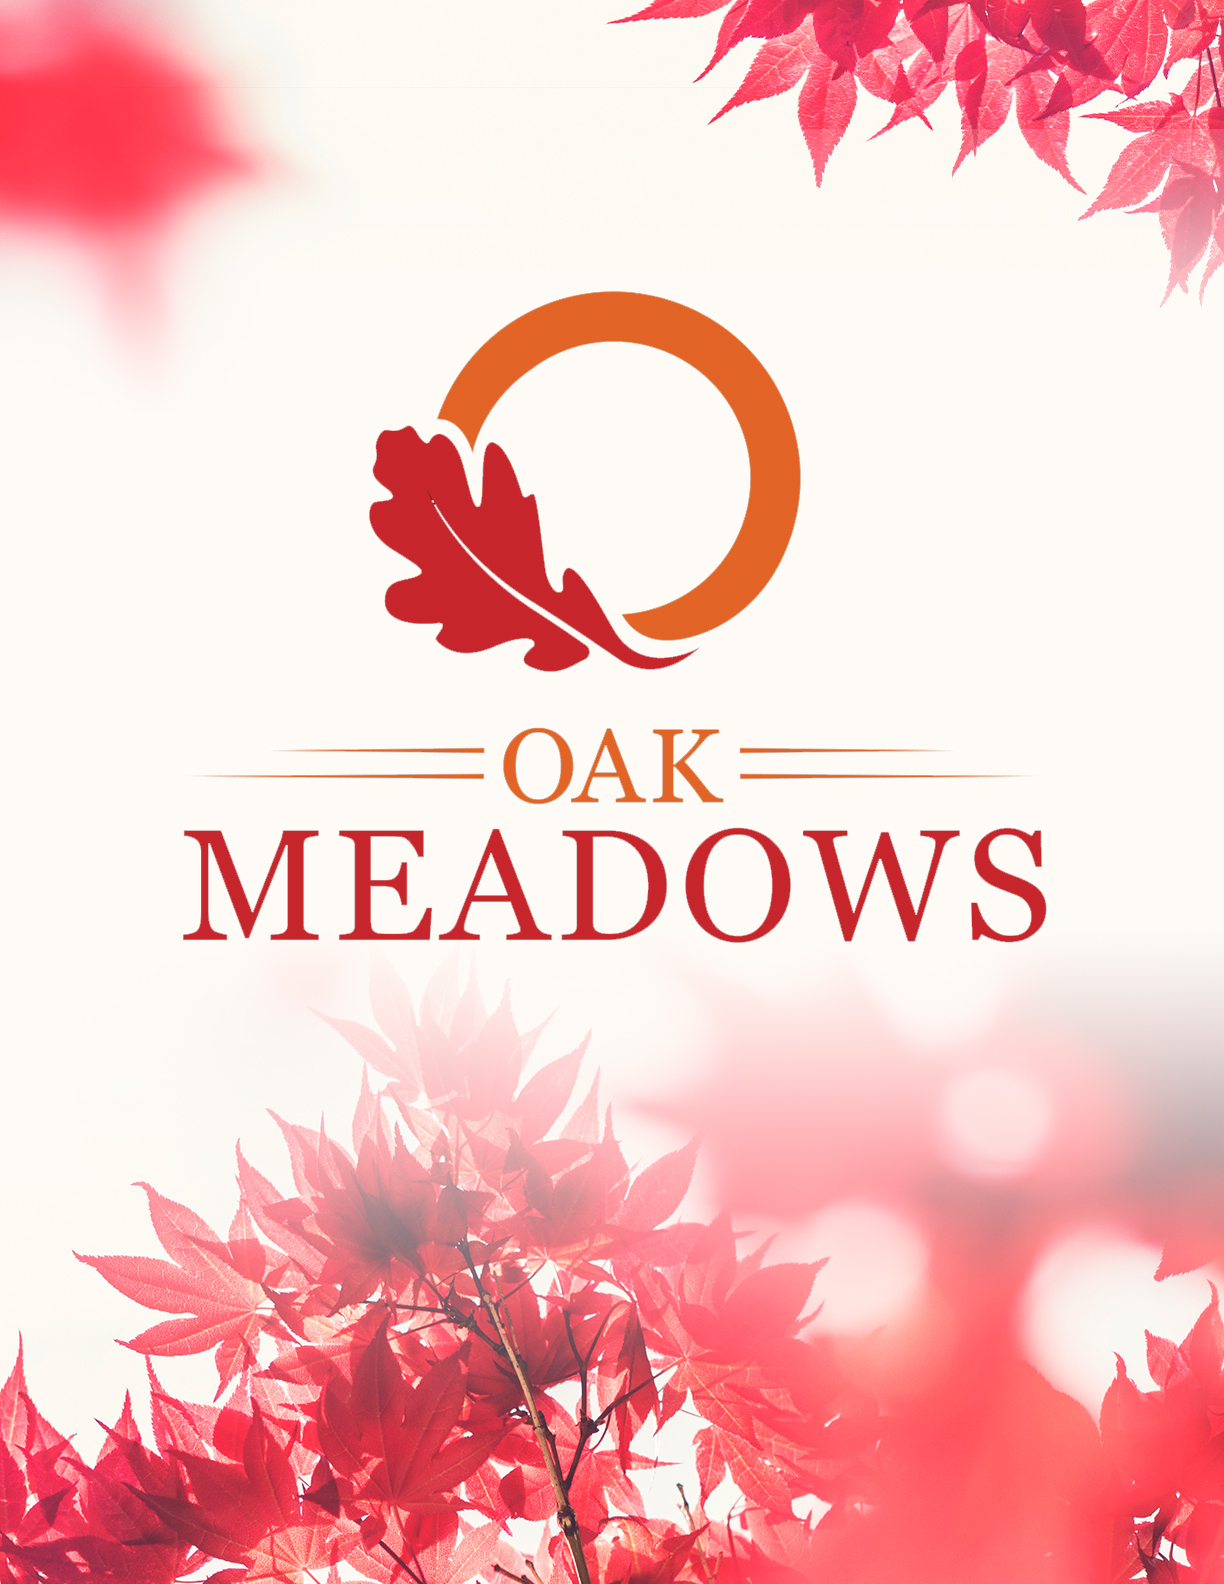 Oak Meadows logo design